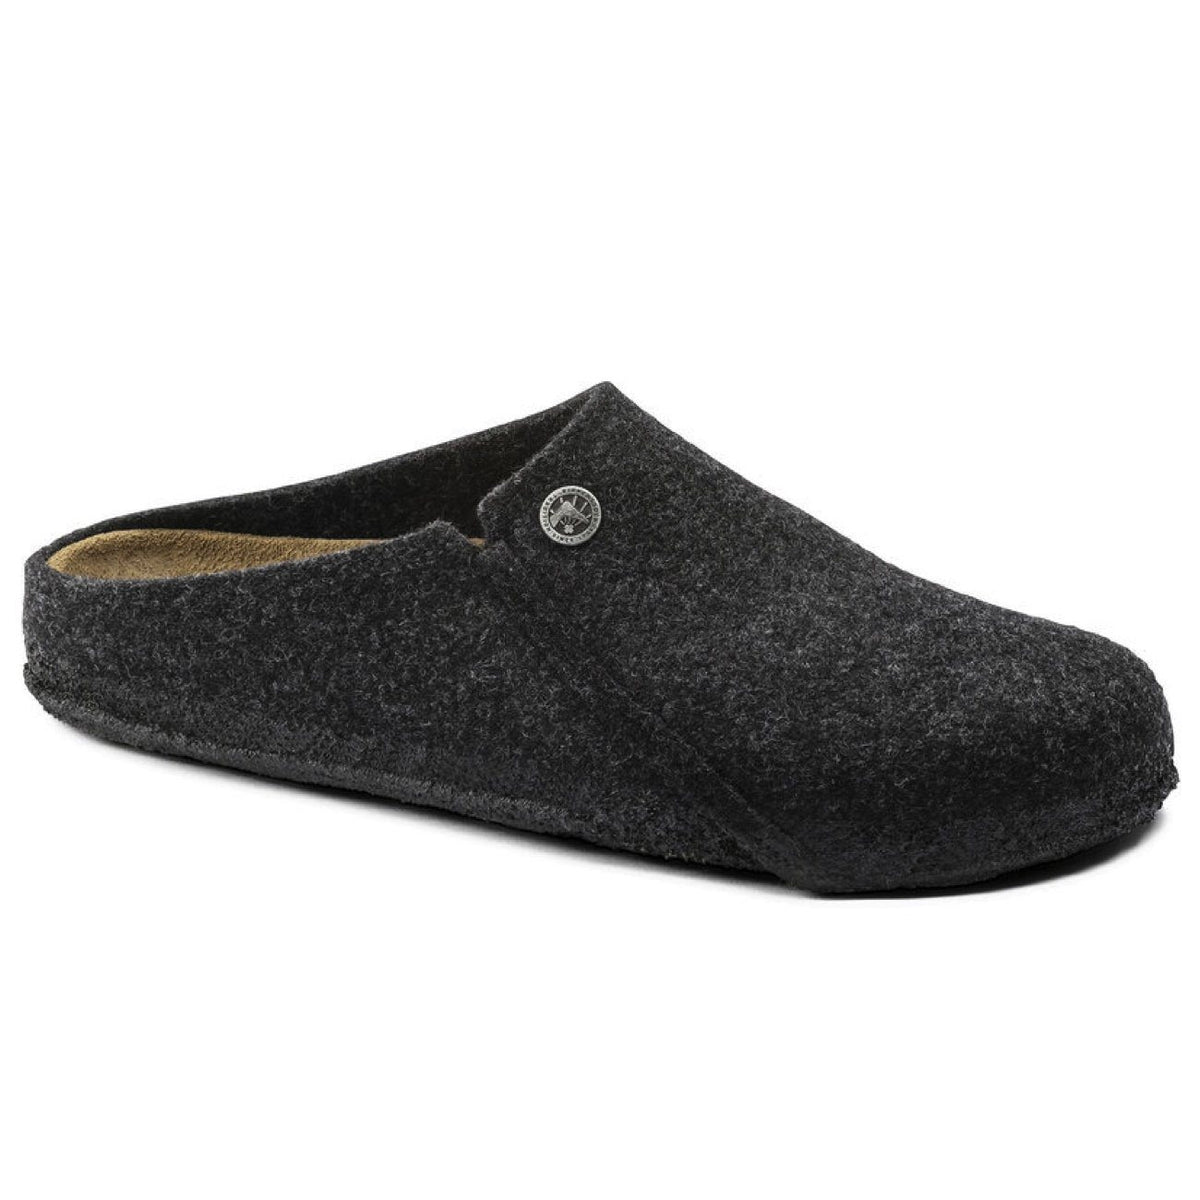 Birkenstock Seasonal, Zermatt, Wool Felt, Regular Fit, Anthracite